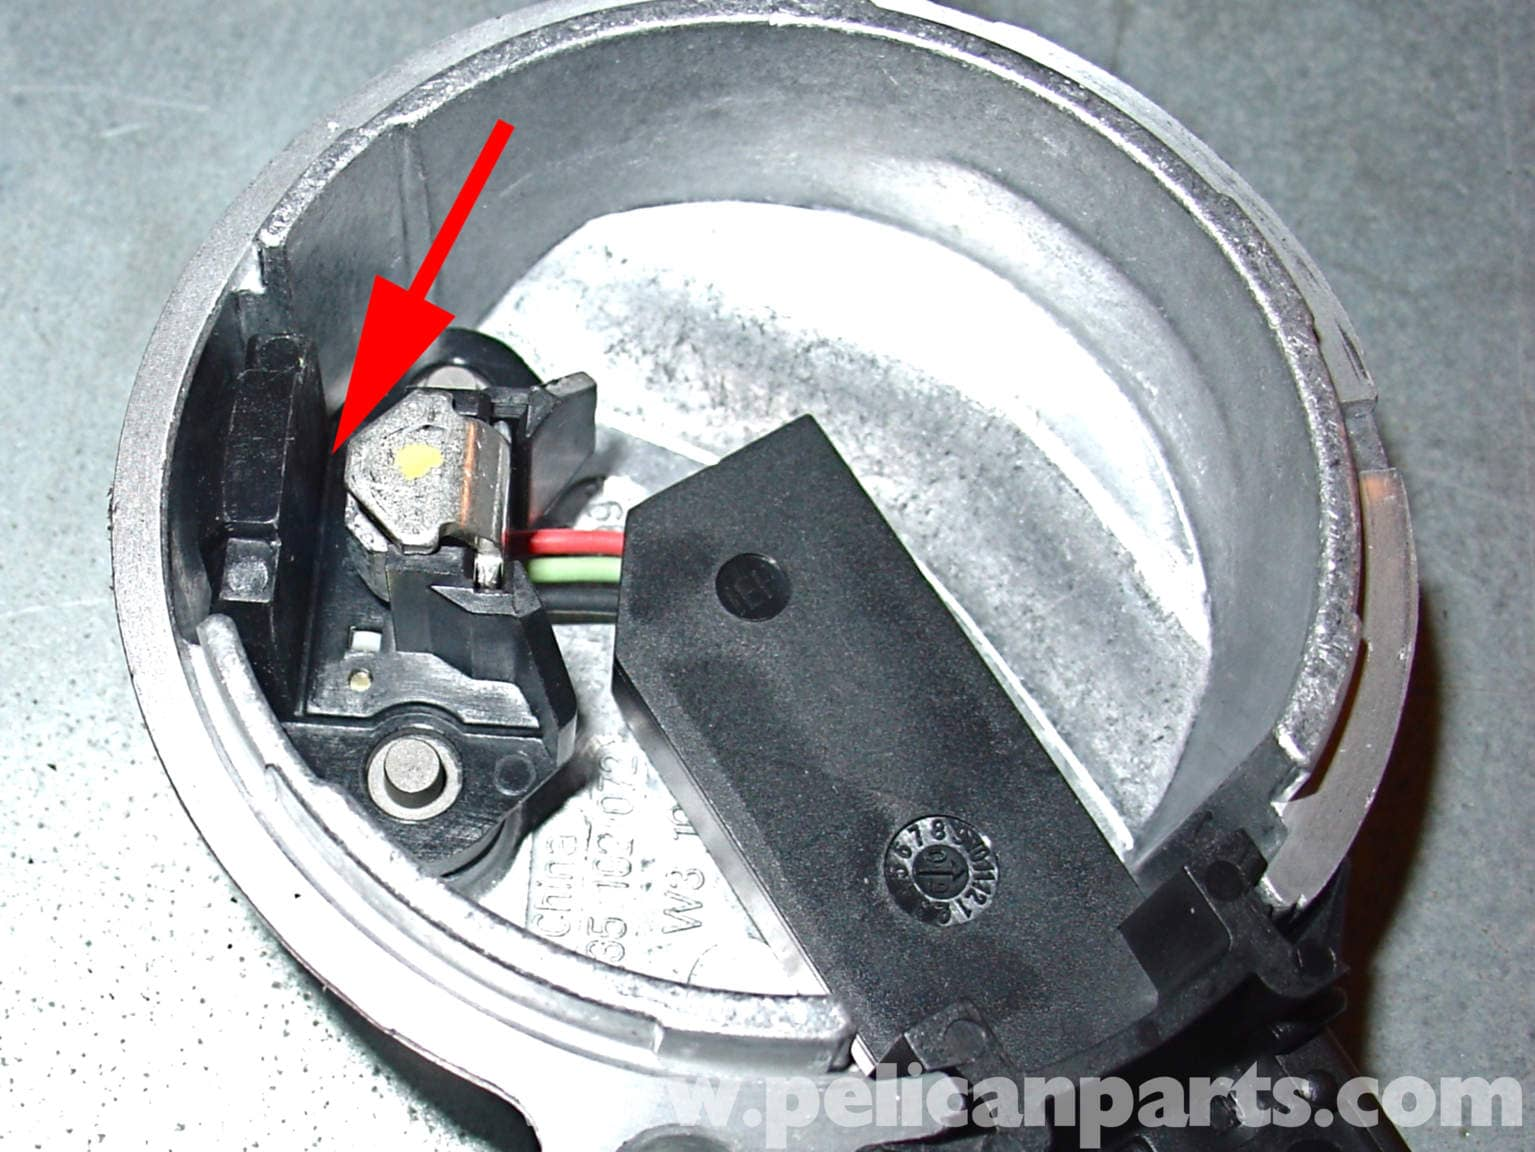 Audi A4 18t Volkswagen Camshaft Position Sensor Golf Jetta Vw Fuel Filter Location Large Image